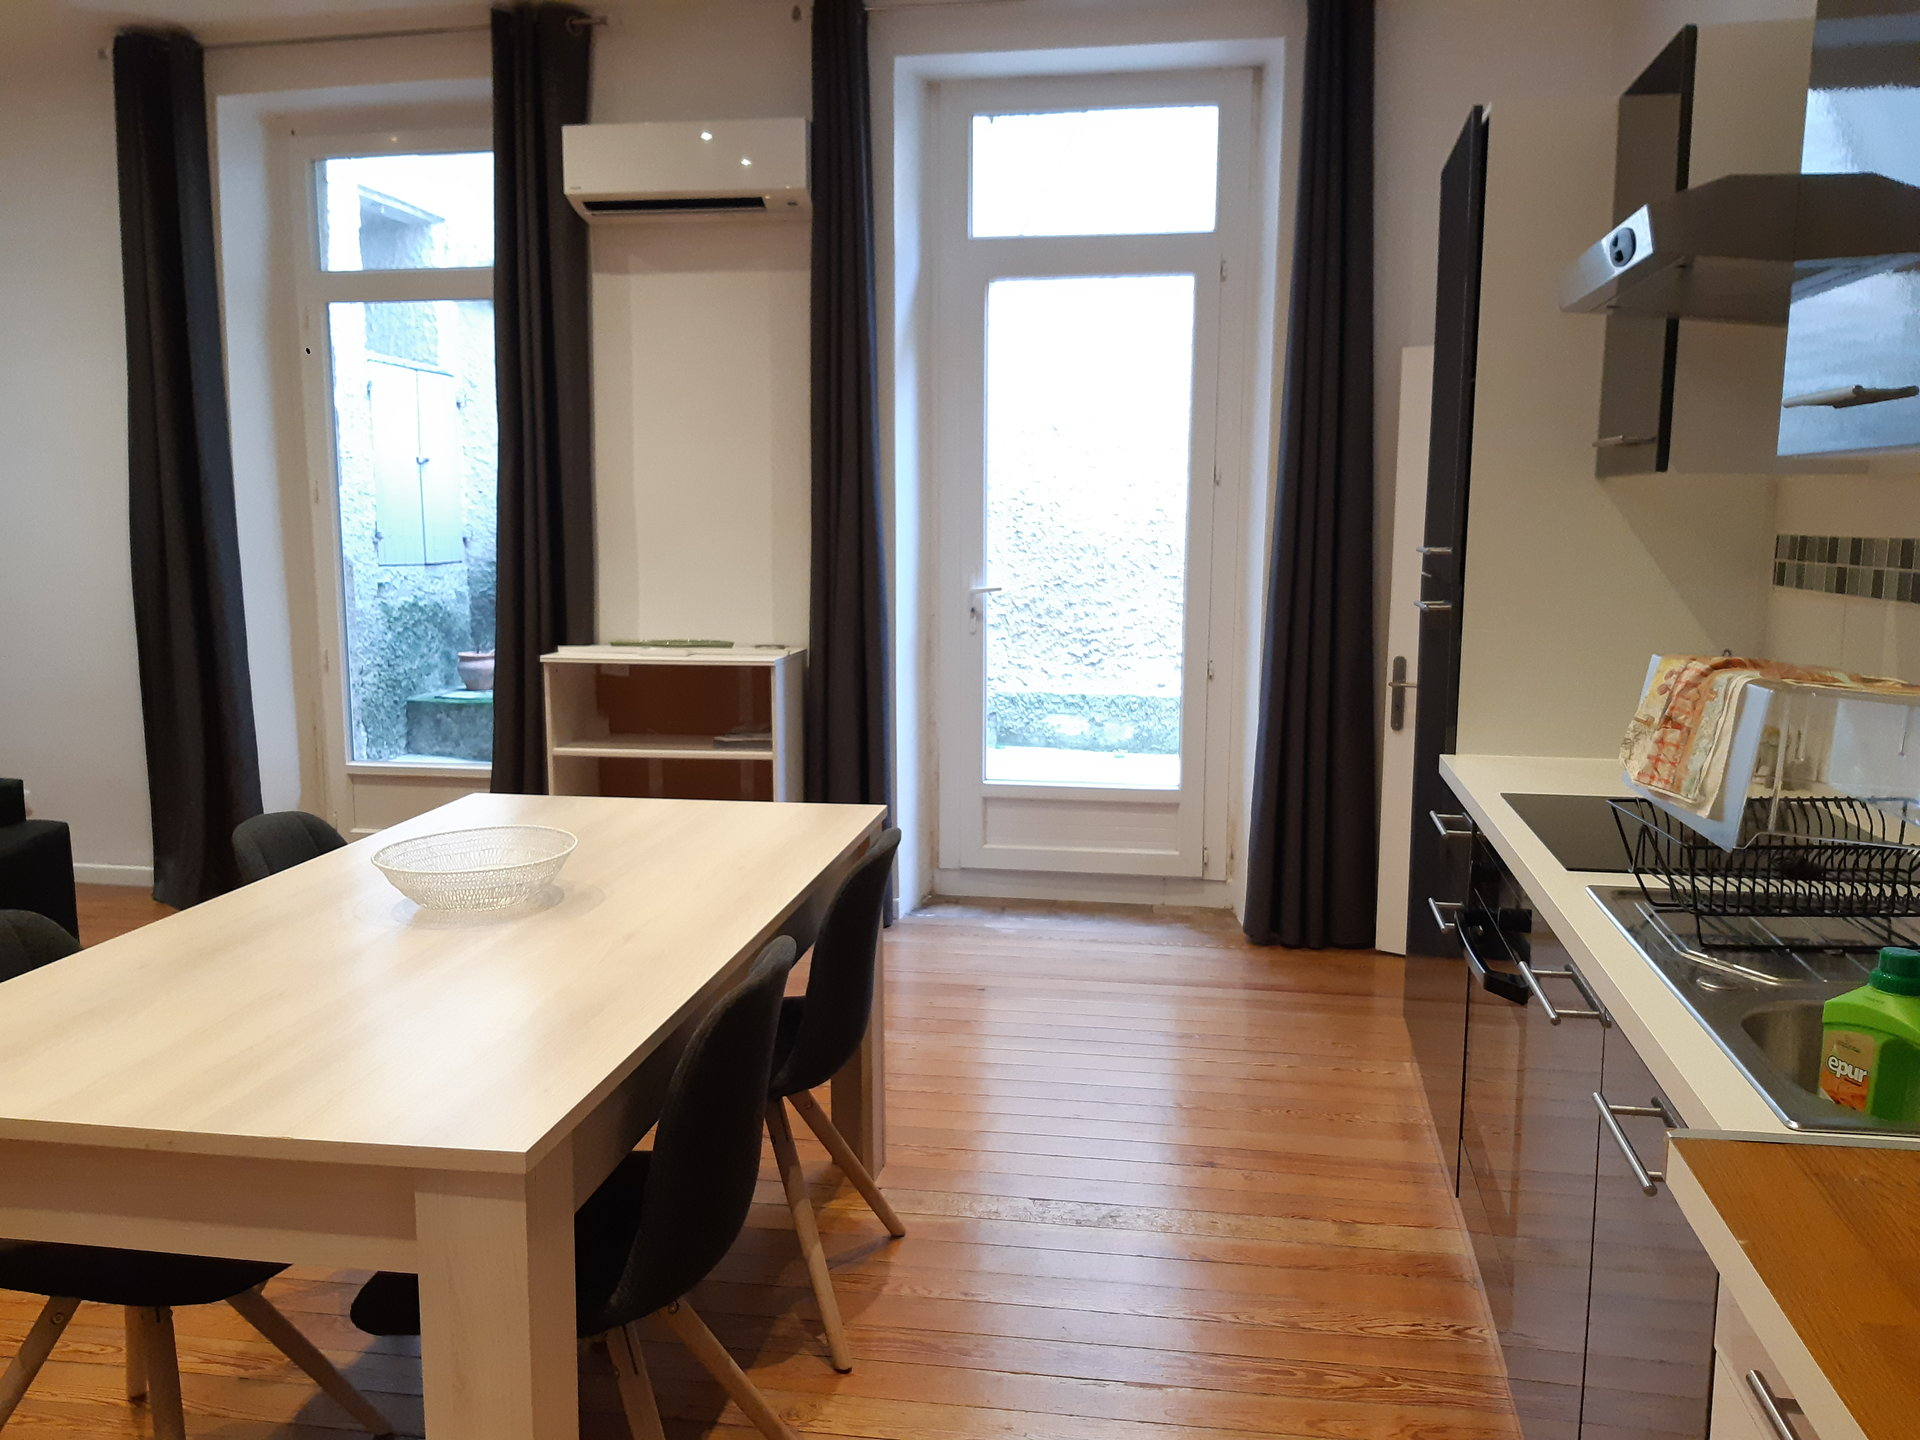 Location Appartement BARBENTANE surface habitable de 47 m²